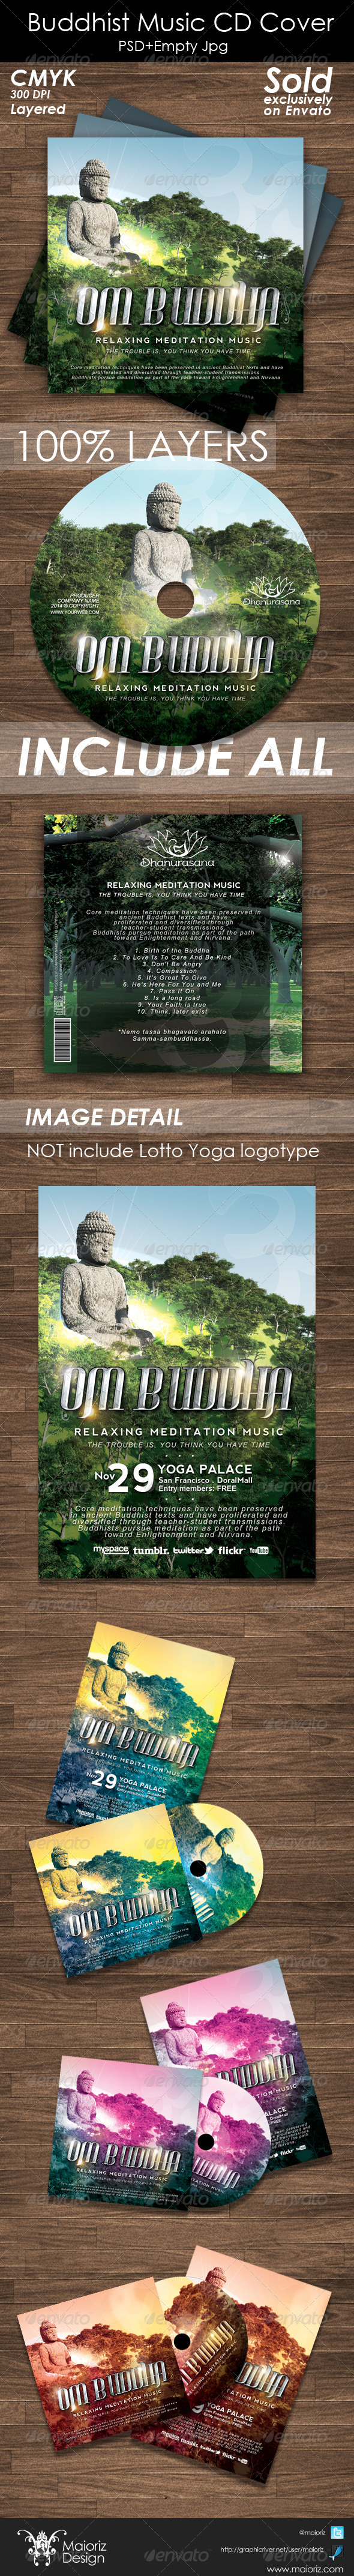 Buddhist Music Cd Cover